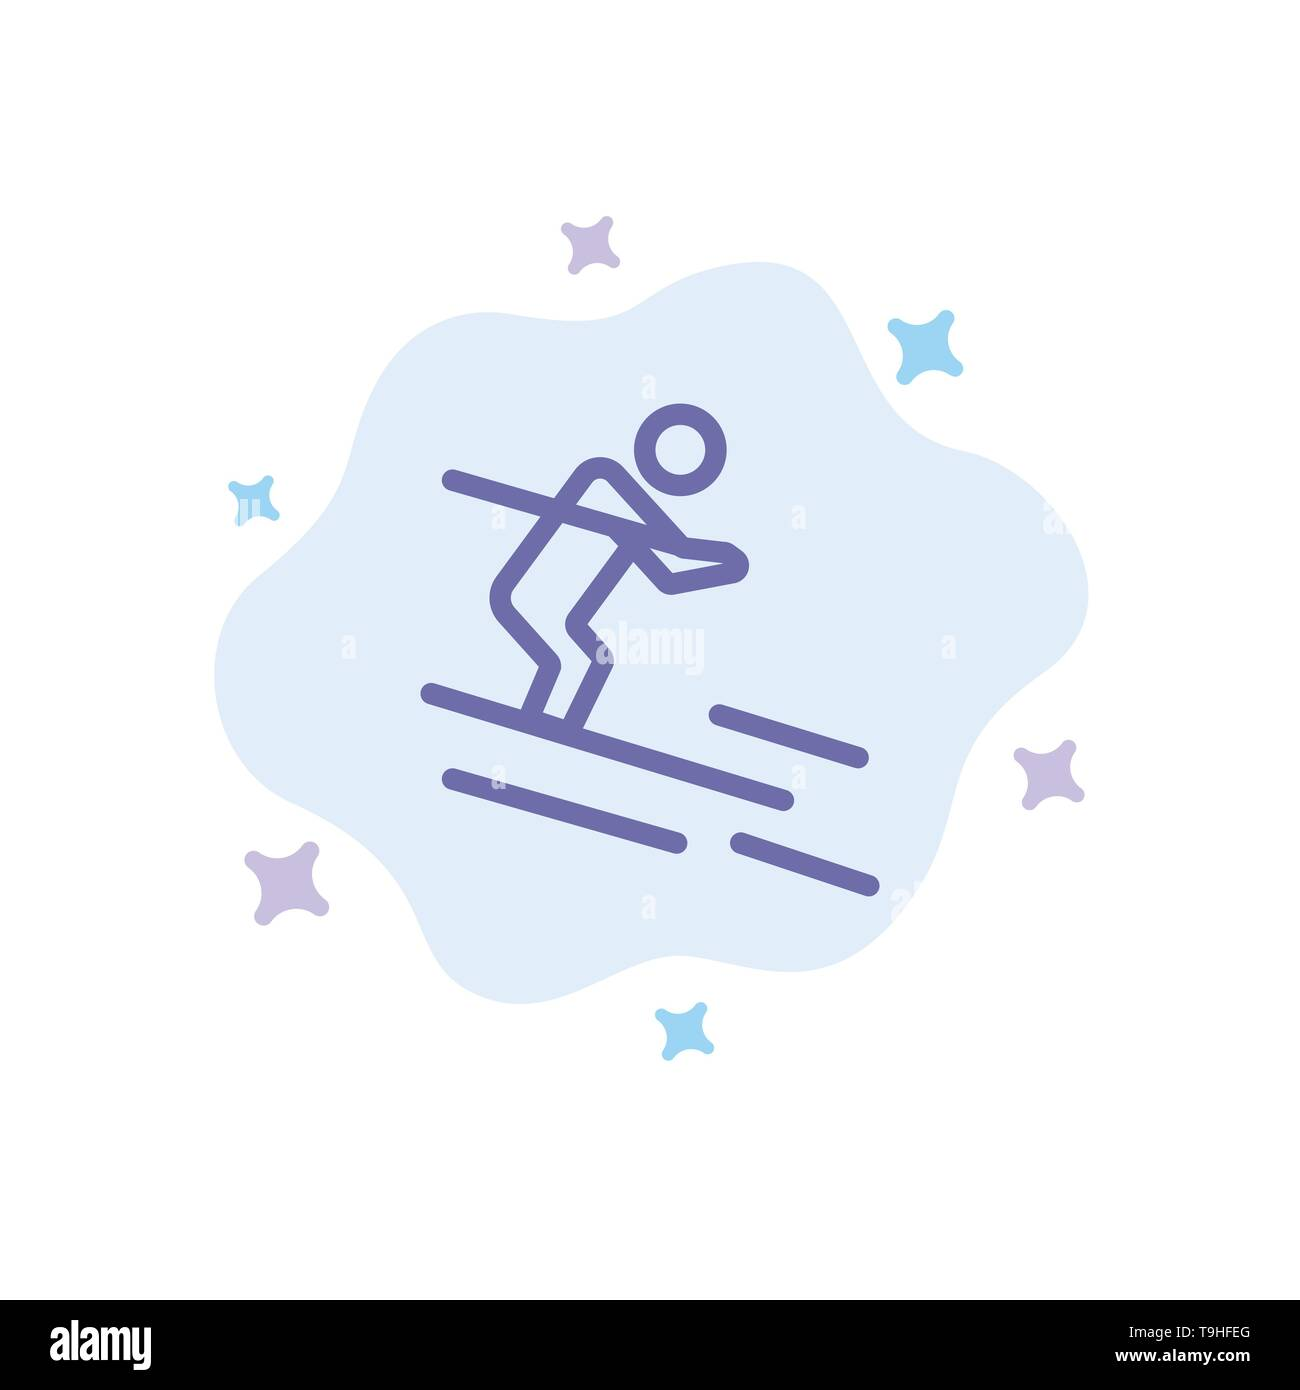 Activity, Ski, Skiing, Sportsman Blue Icon on Abstract Cloud Background - Stock Image